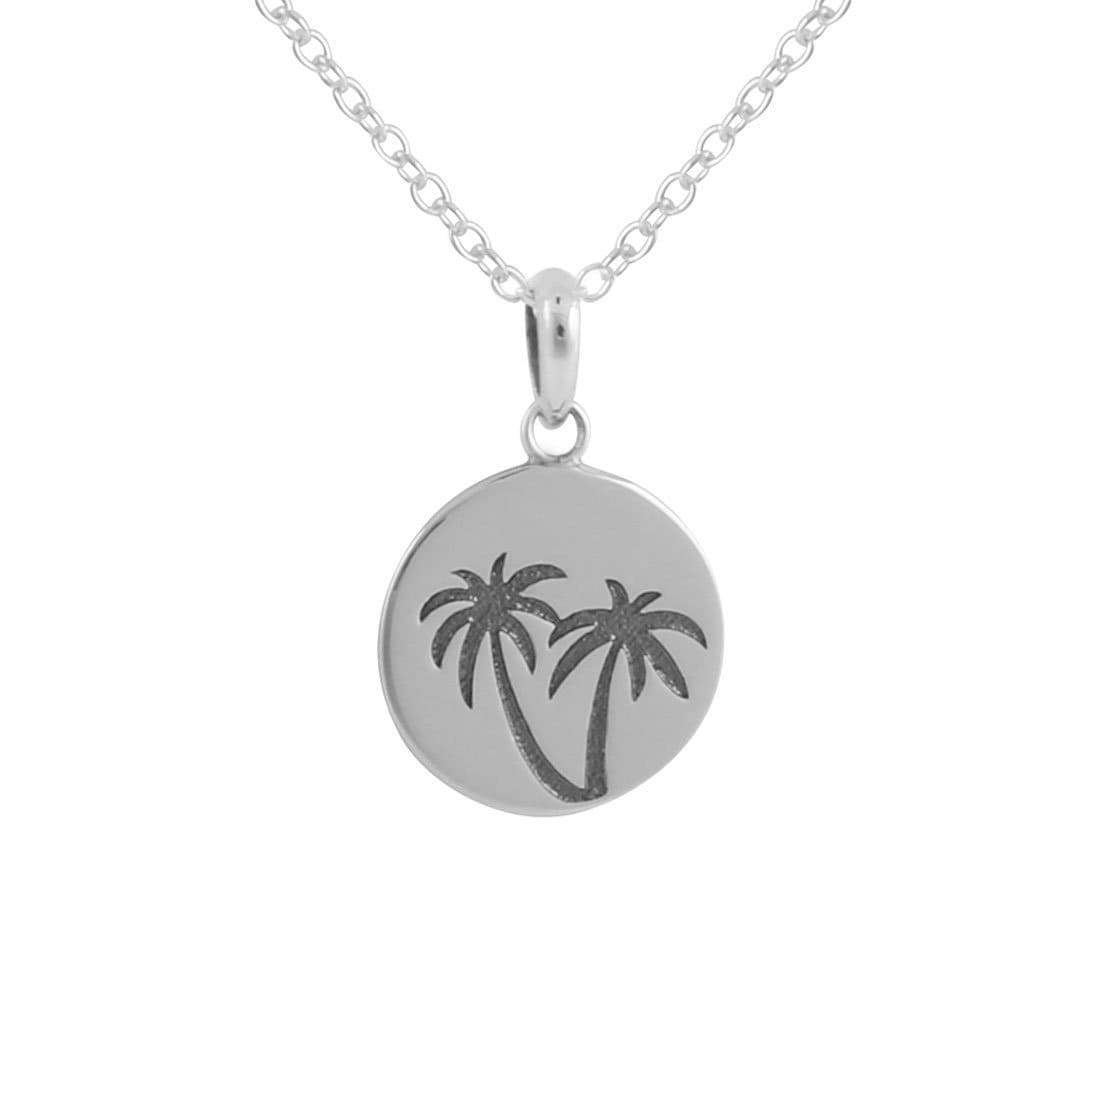 Midsummer Star Necklaces Miami Medallion Necklace